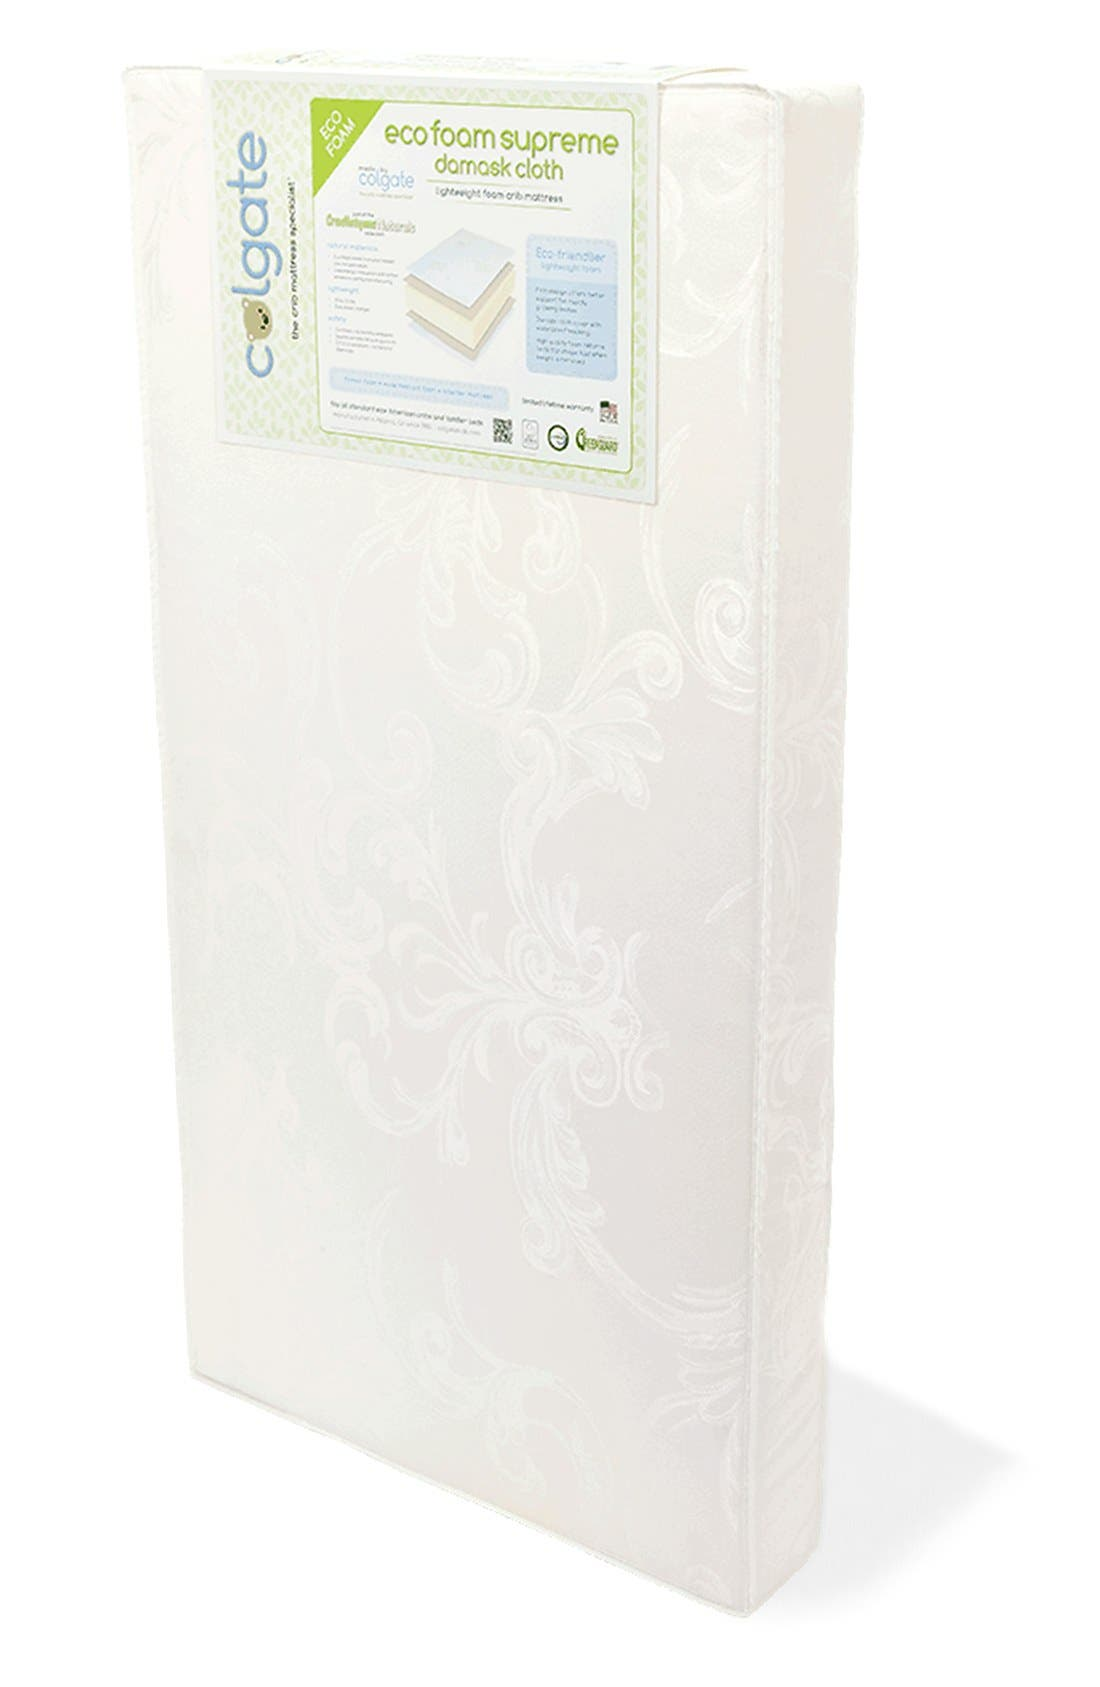 Colgate 'Home<sup>™</sup>' Bed Mattress,                         Main,                         color, White